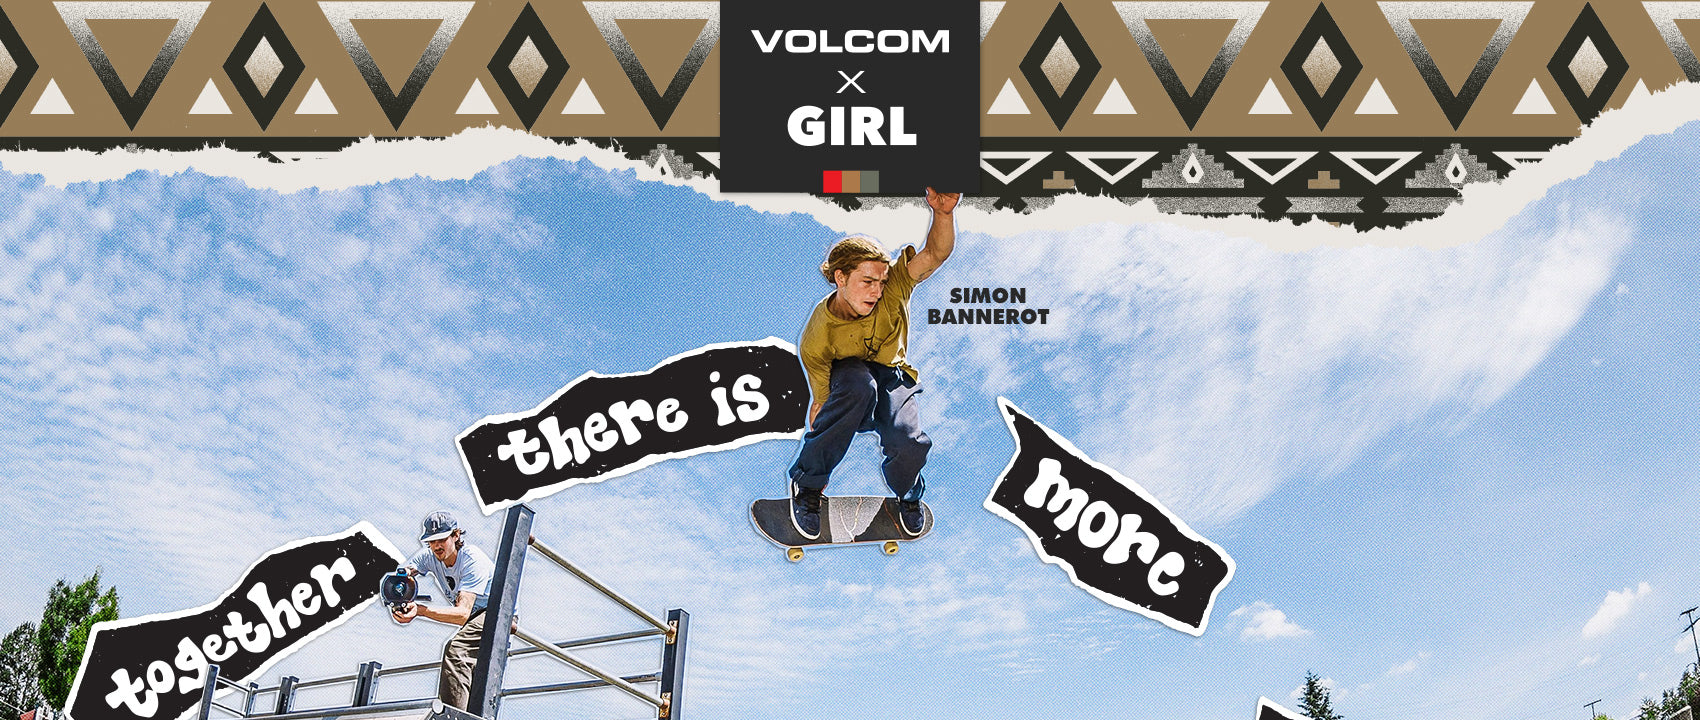 volcom x girl together there is more of us